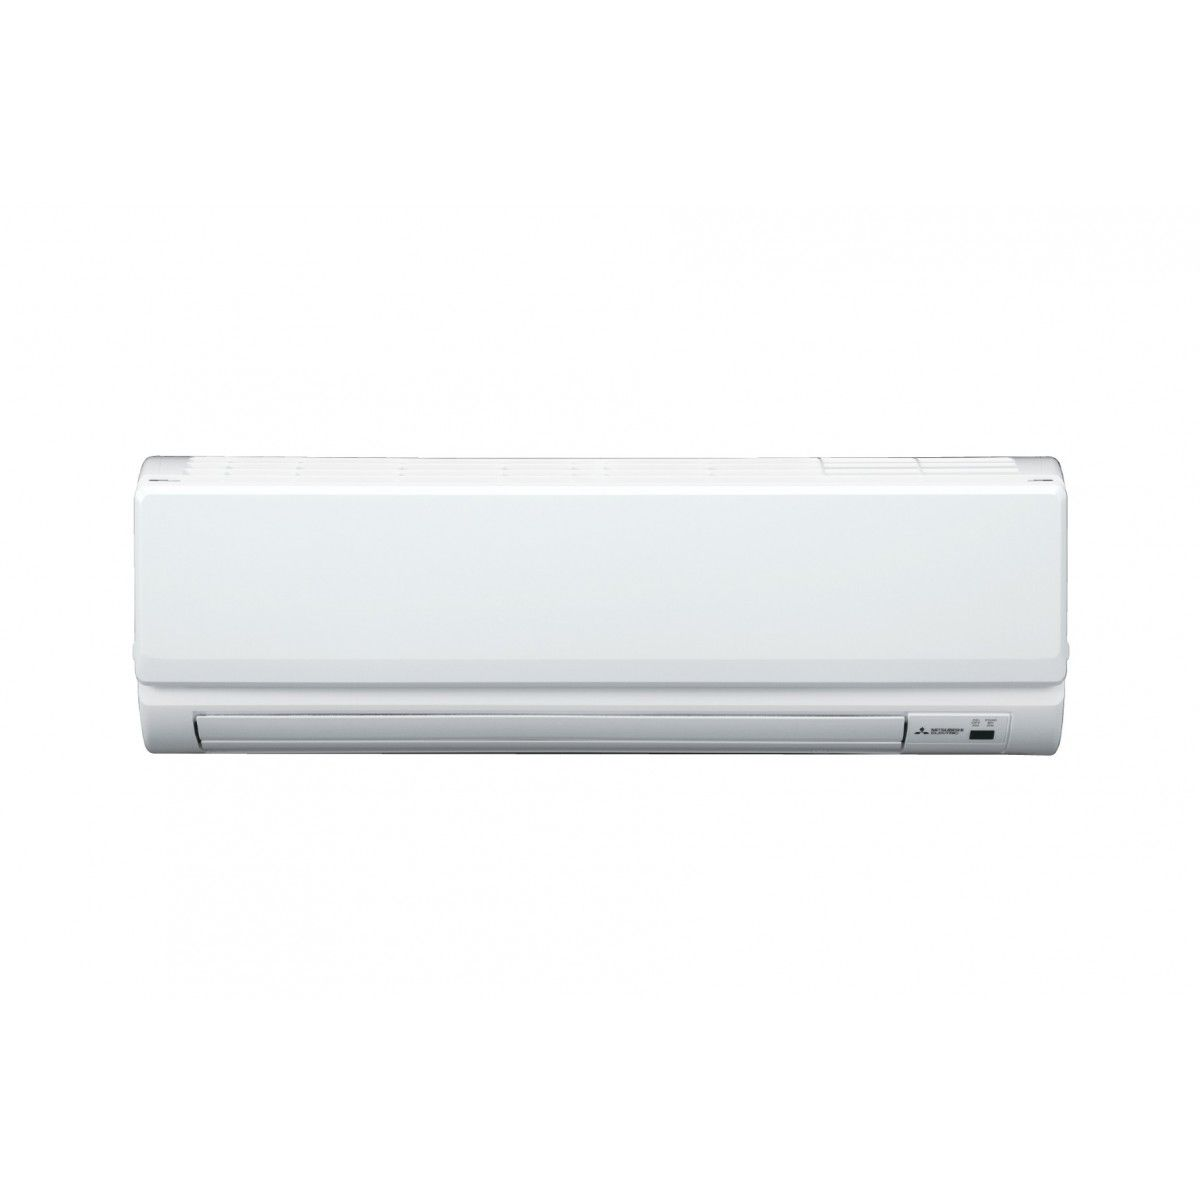 AC Components / 18K BTU Mitsubishi PKAA Wall Mounted Indoor Unit #5C6F6F